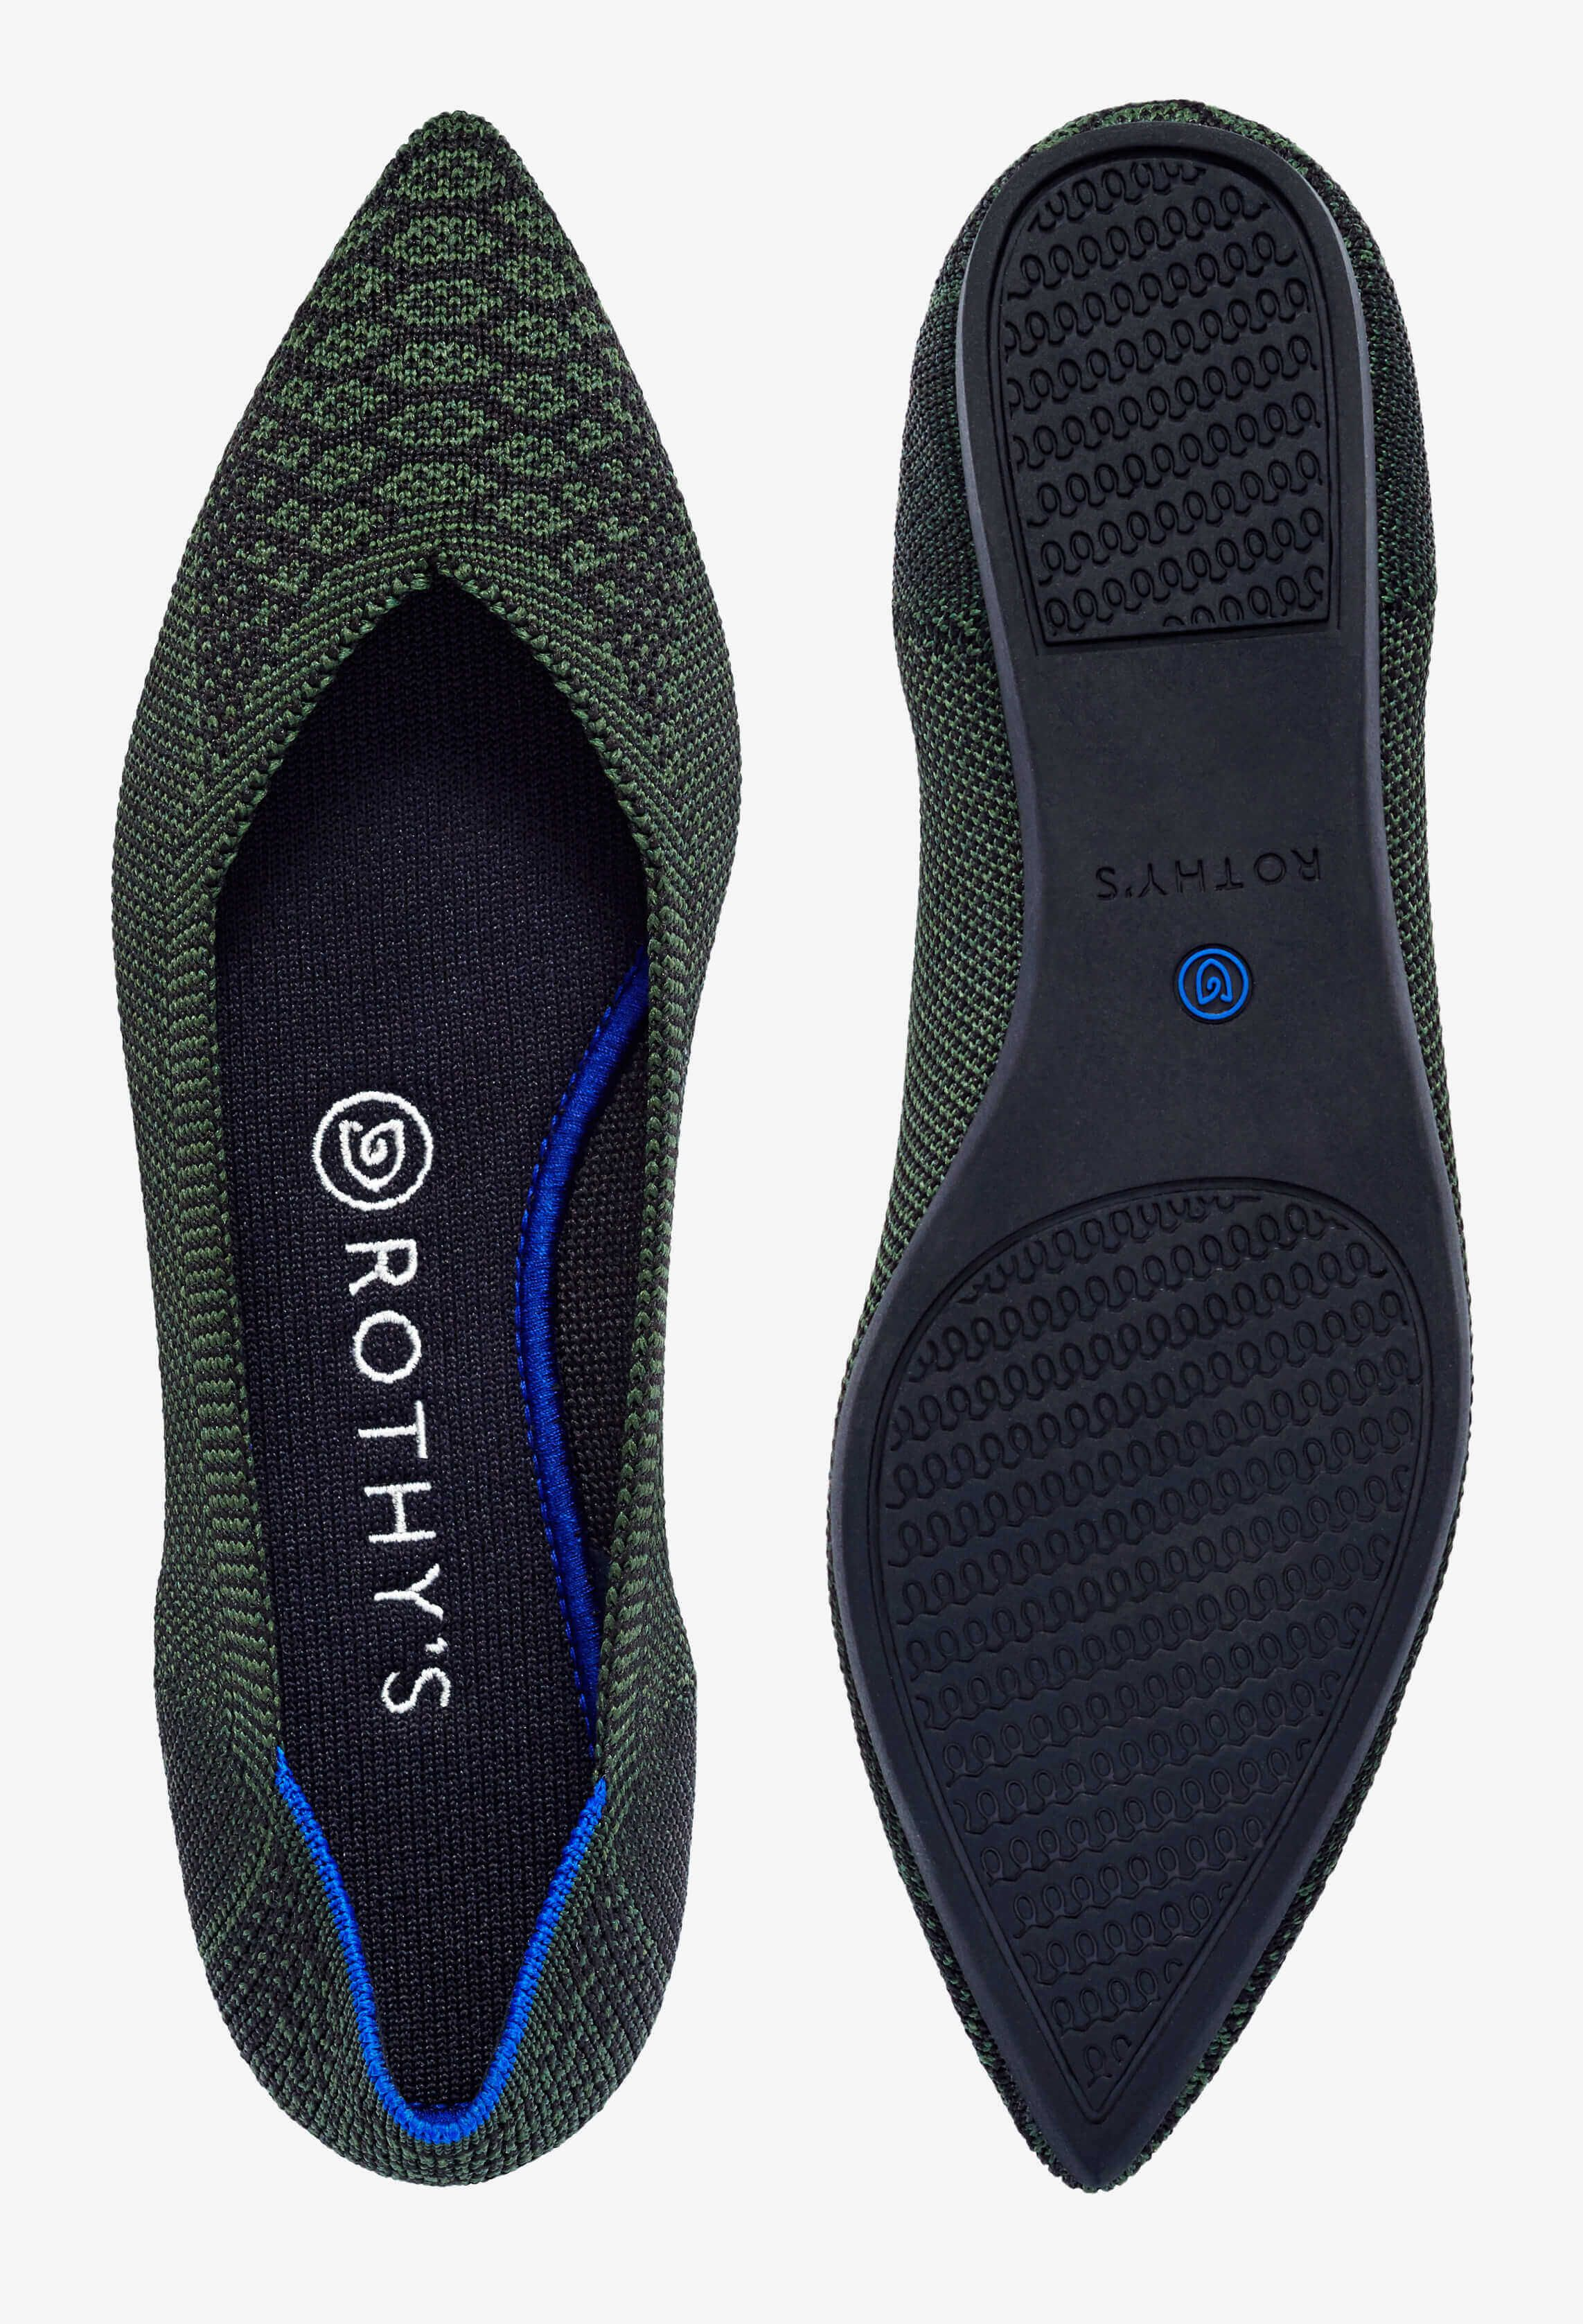 Rothy's, the environmentally friendly shoes made of recycled